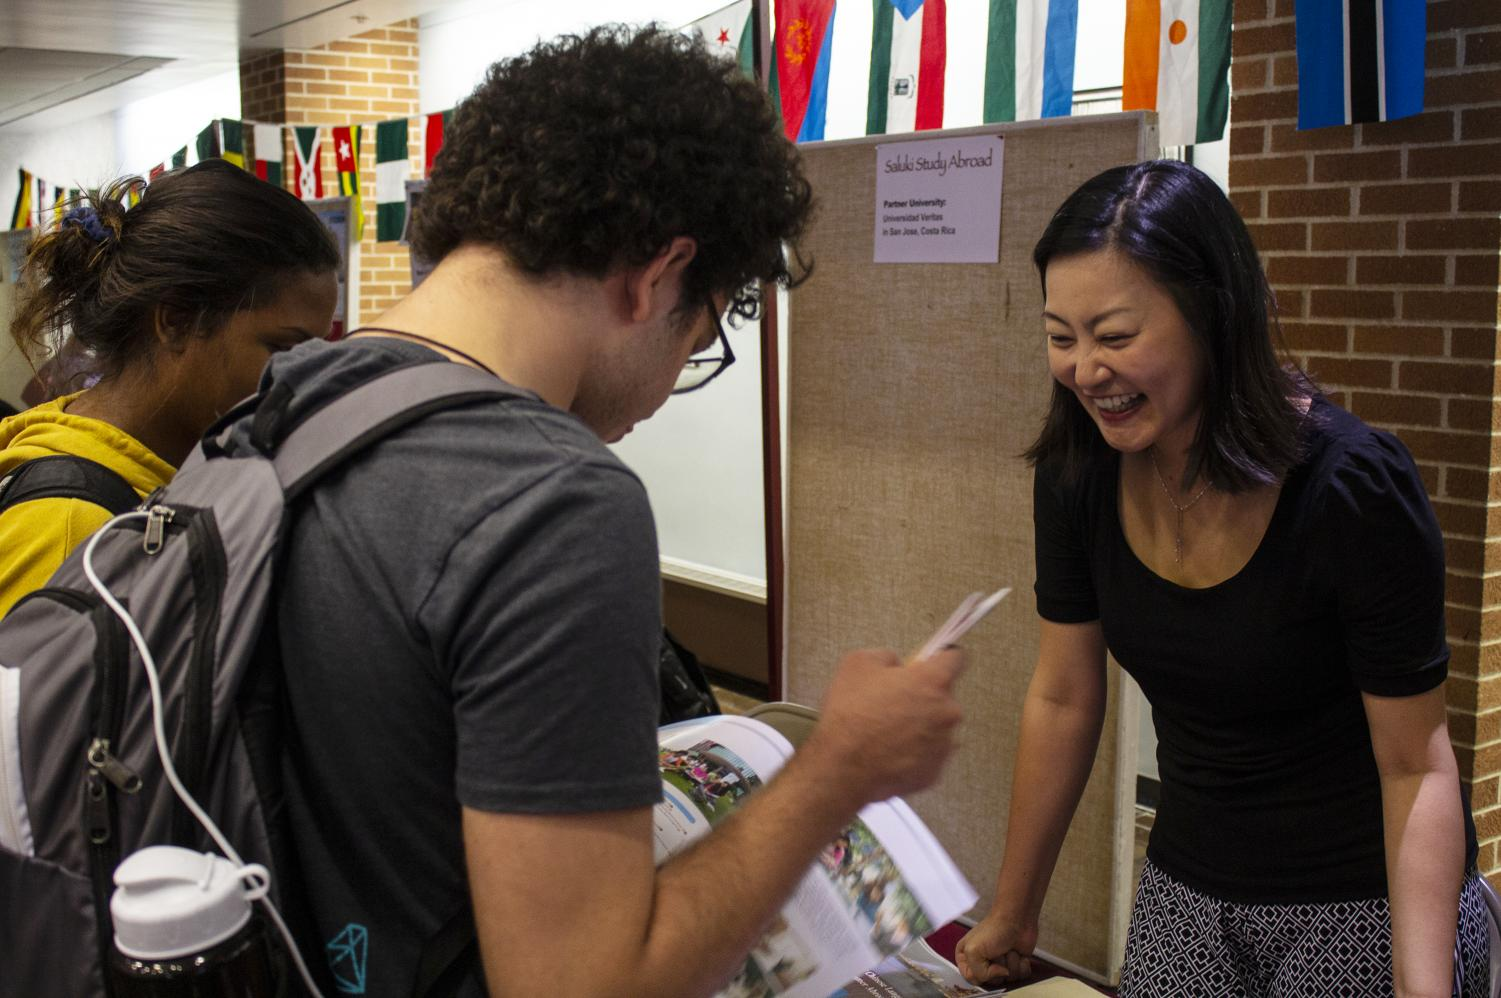 Dr. Shu-Ling Wu (right), 36, of Taiwan, speaks to Andrew Aaflaq (center), 20, of Carbondale, and Destiny Hurd (left), 21, of LaGrange, about her Chinese Language and Culture Program at SIU's Study Abroad Fair Wednesday, Sept. 12, 2018. (Carson VanBuskirk | @carsonvanbDE)